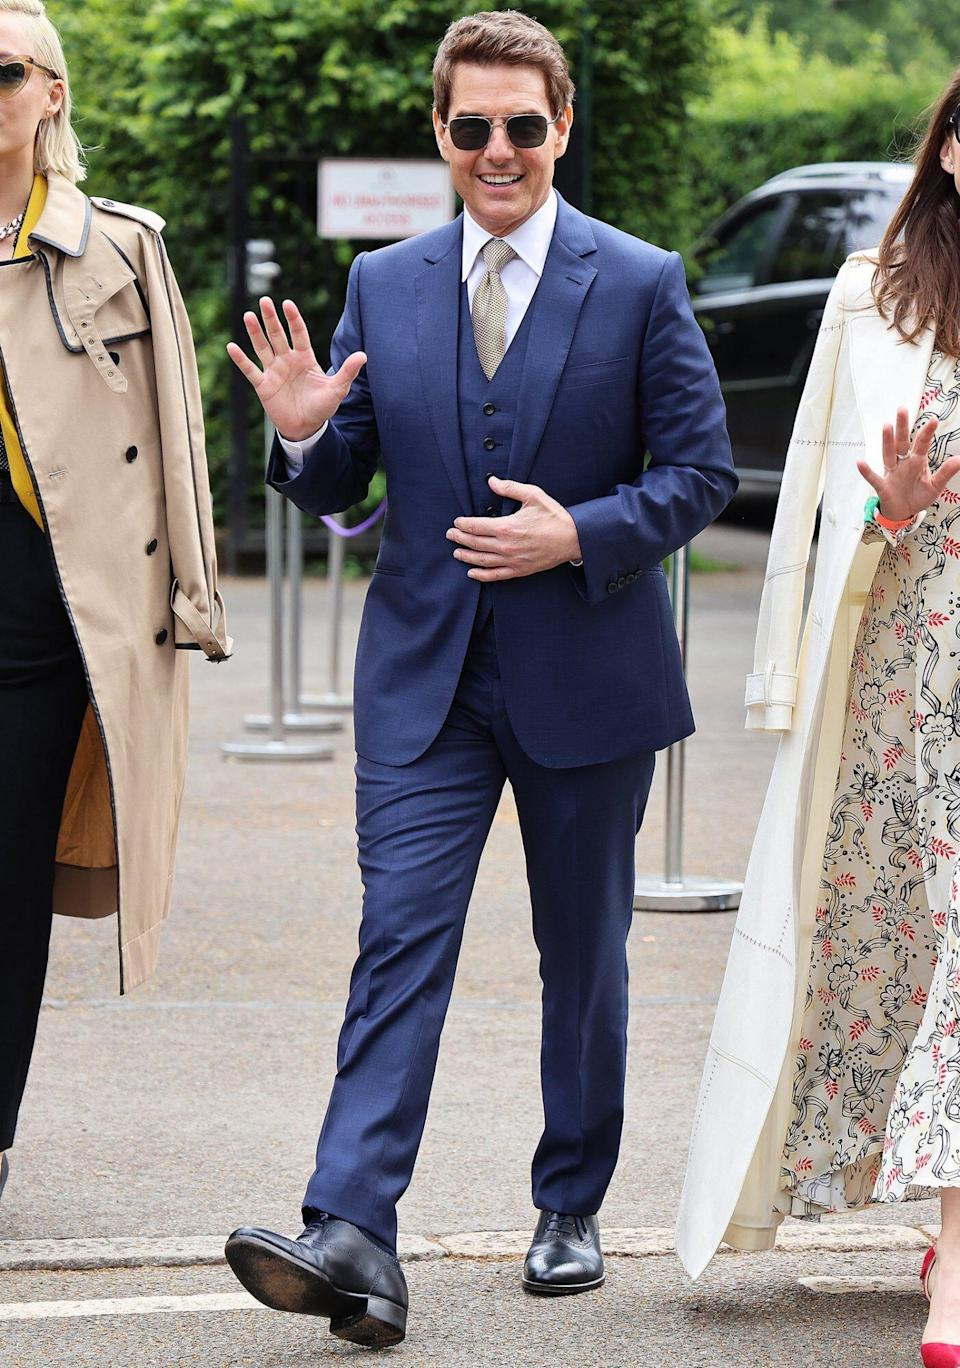 Tom Cruise attends Wimbledon Championships Tennis Tournament Ladies Final Day at All England Lawn Tennis and Croquet Club on July 10, 2021 in London, England.